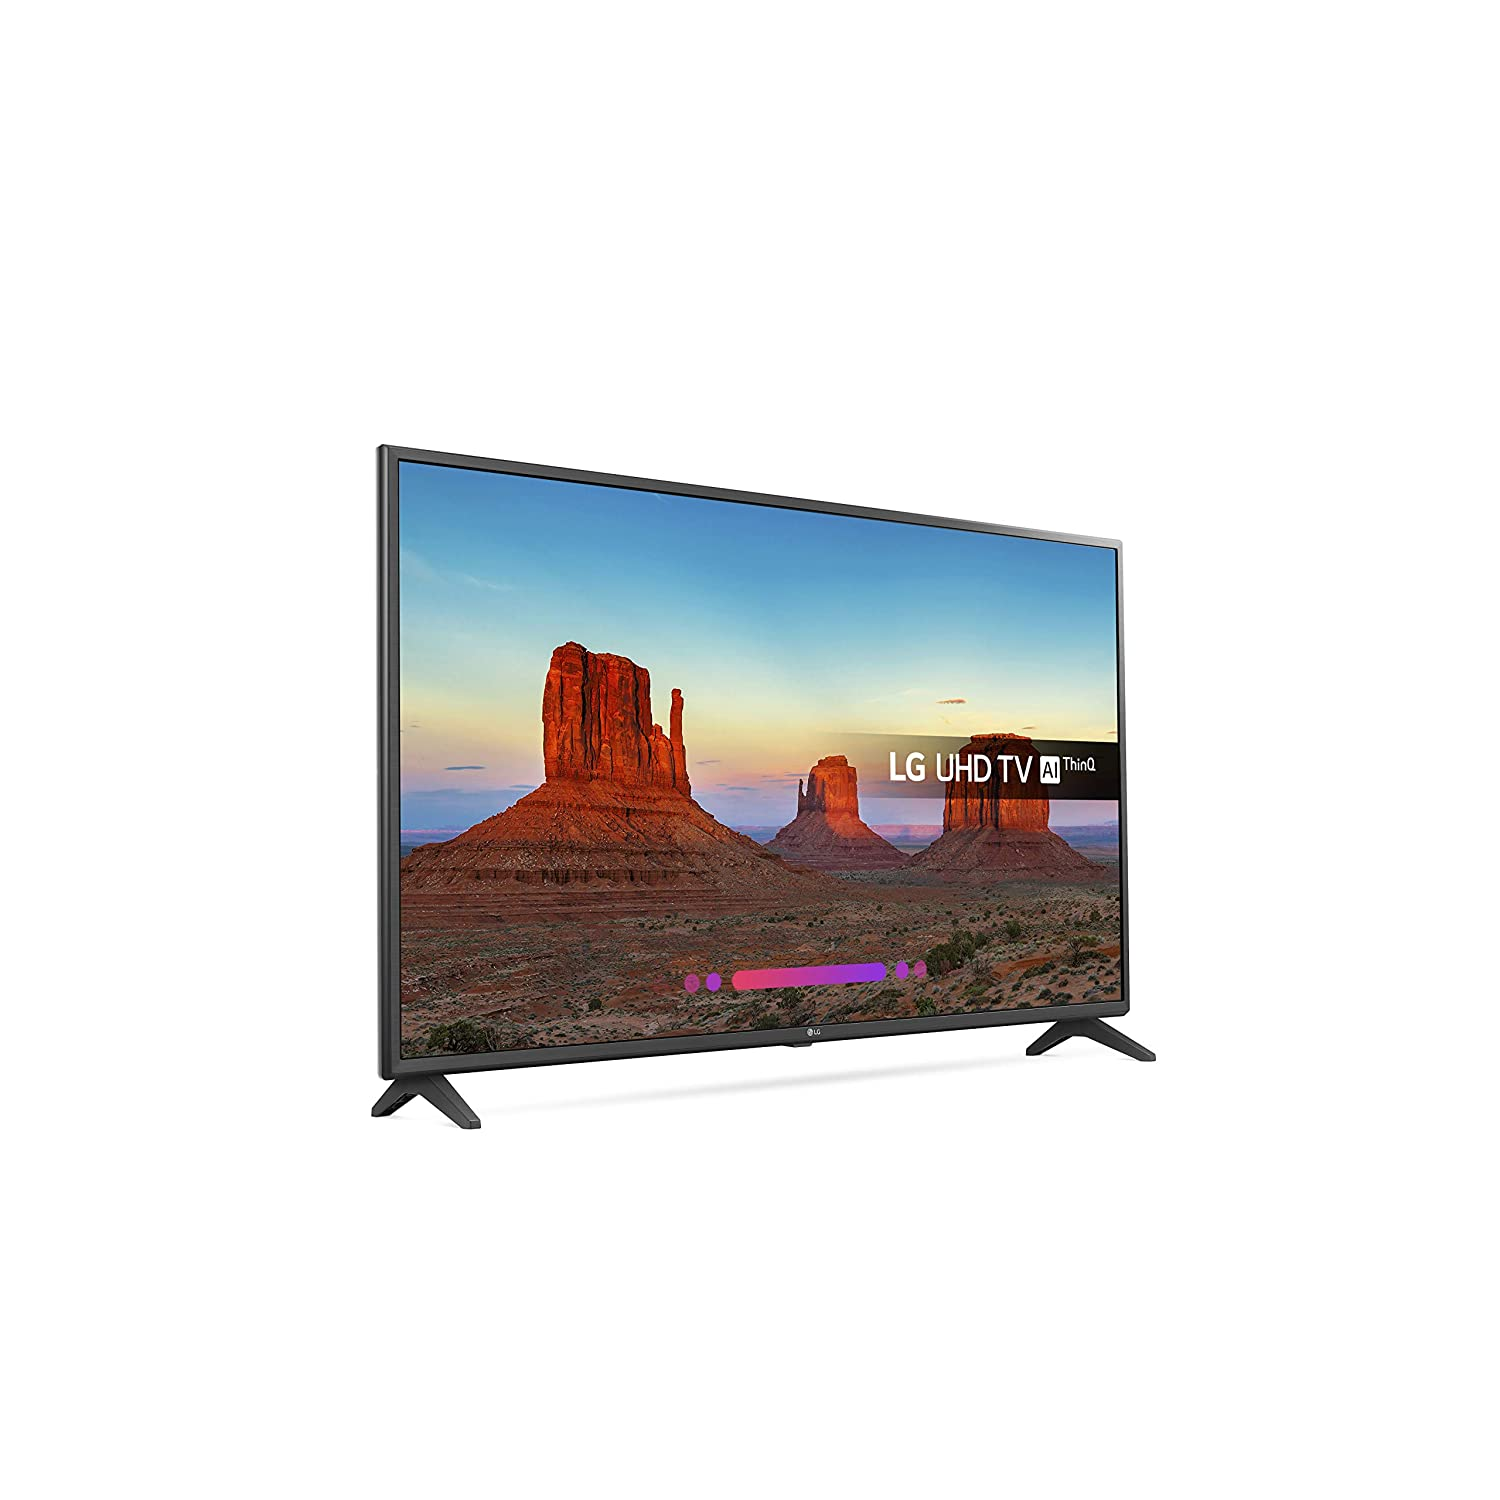 LG 49UK6200PLA 49-Inch 4K UHD HDR Smart LED TV with Freeview Play (2018  Model) - Black